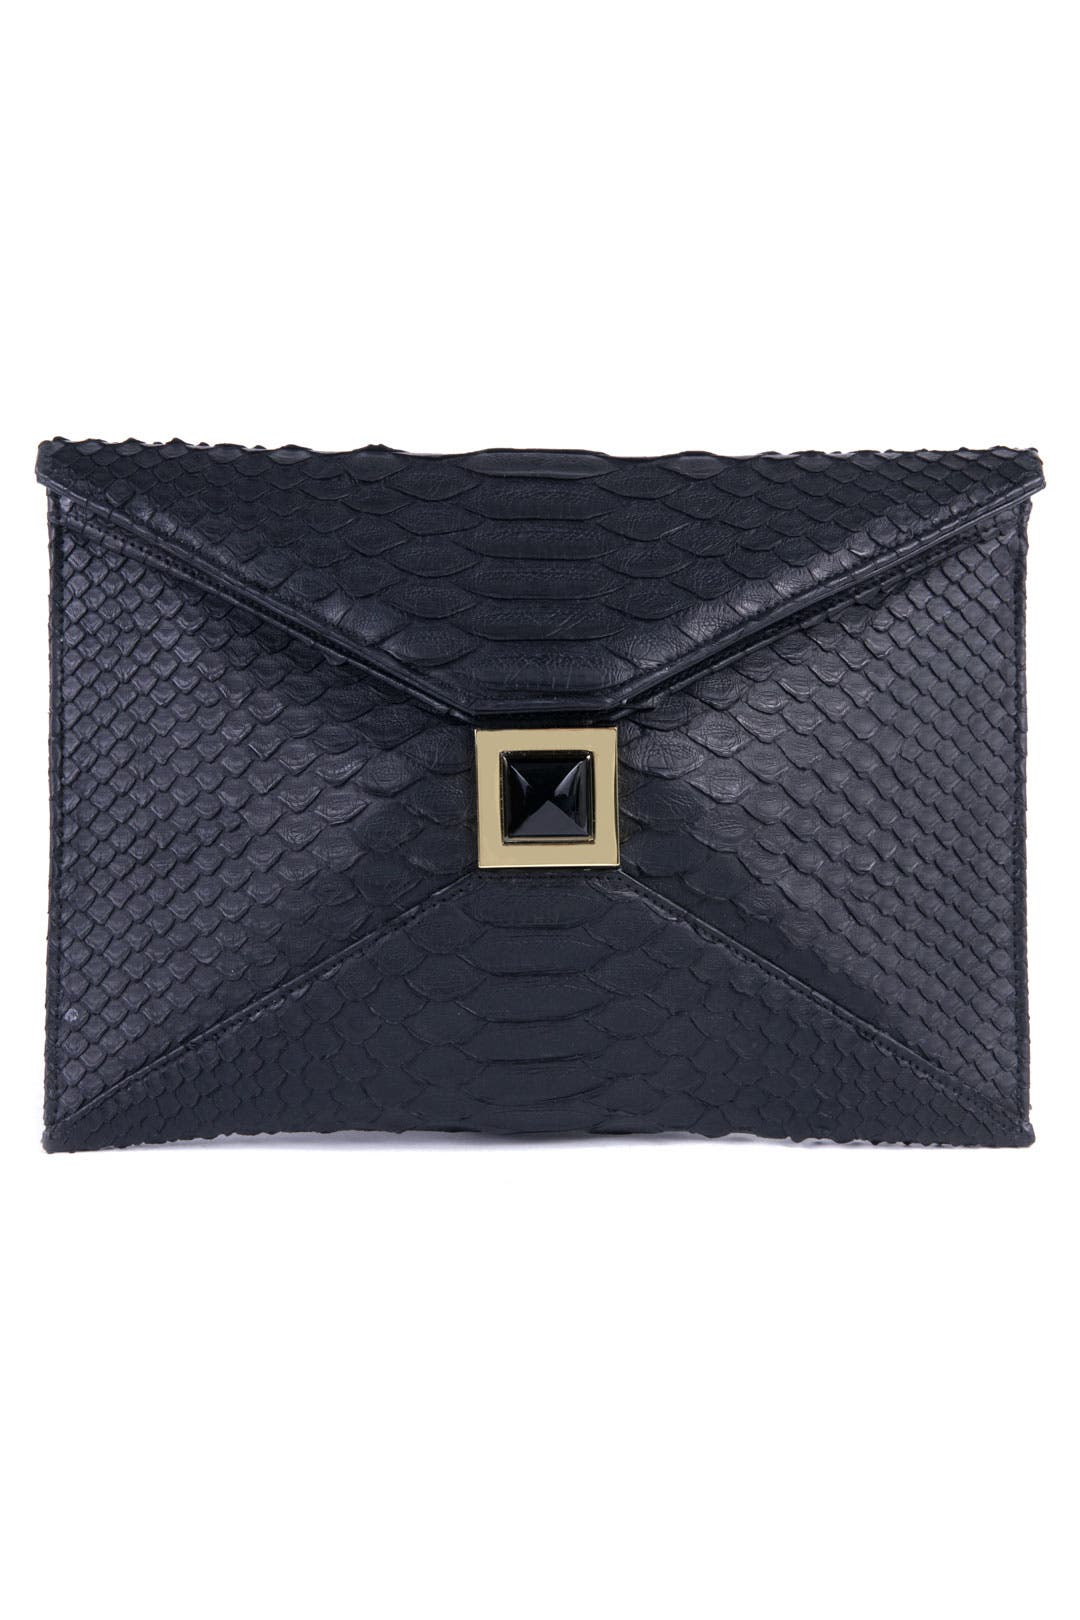 Black Python Clutch by Kara Ross